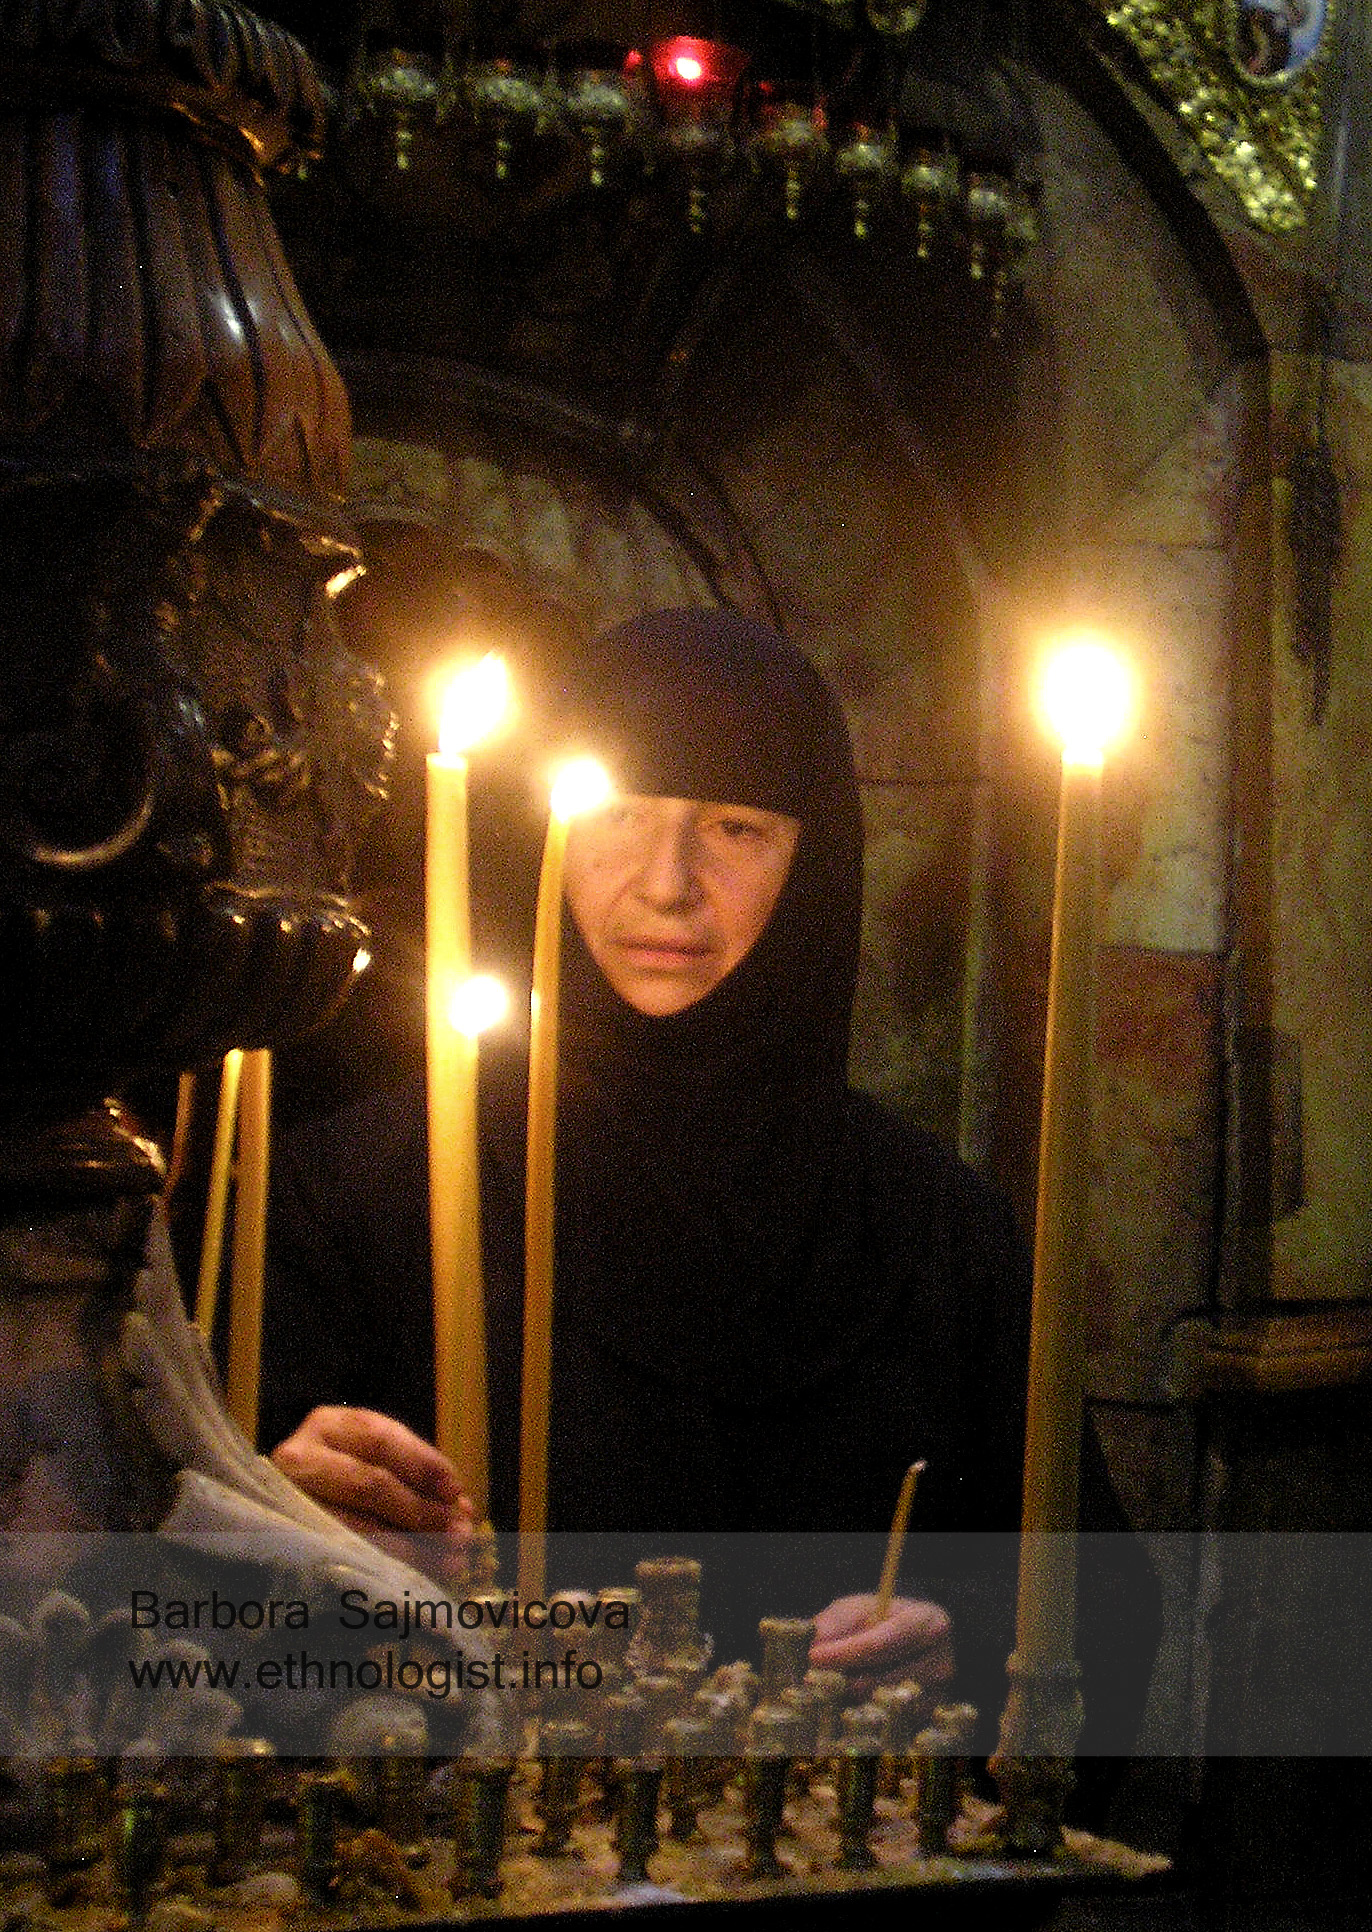 The Orthodox Christian Woman in the Church of the Resurrection in Jerusalem